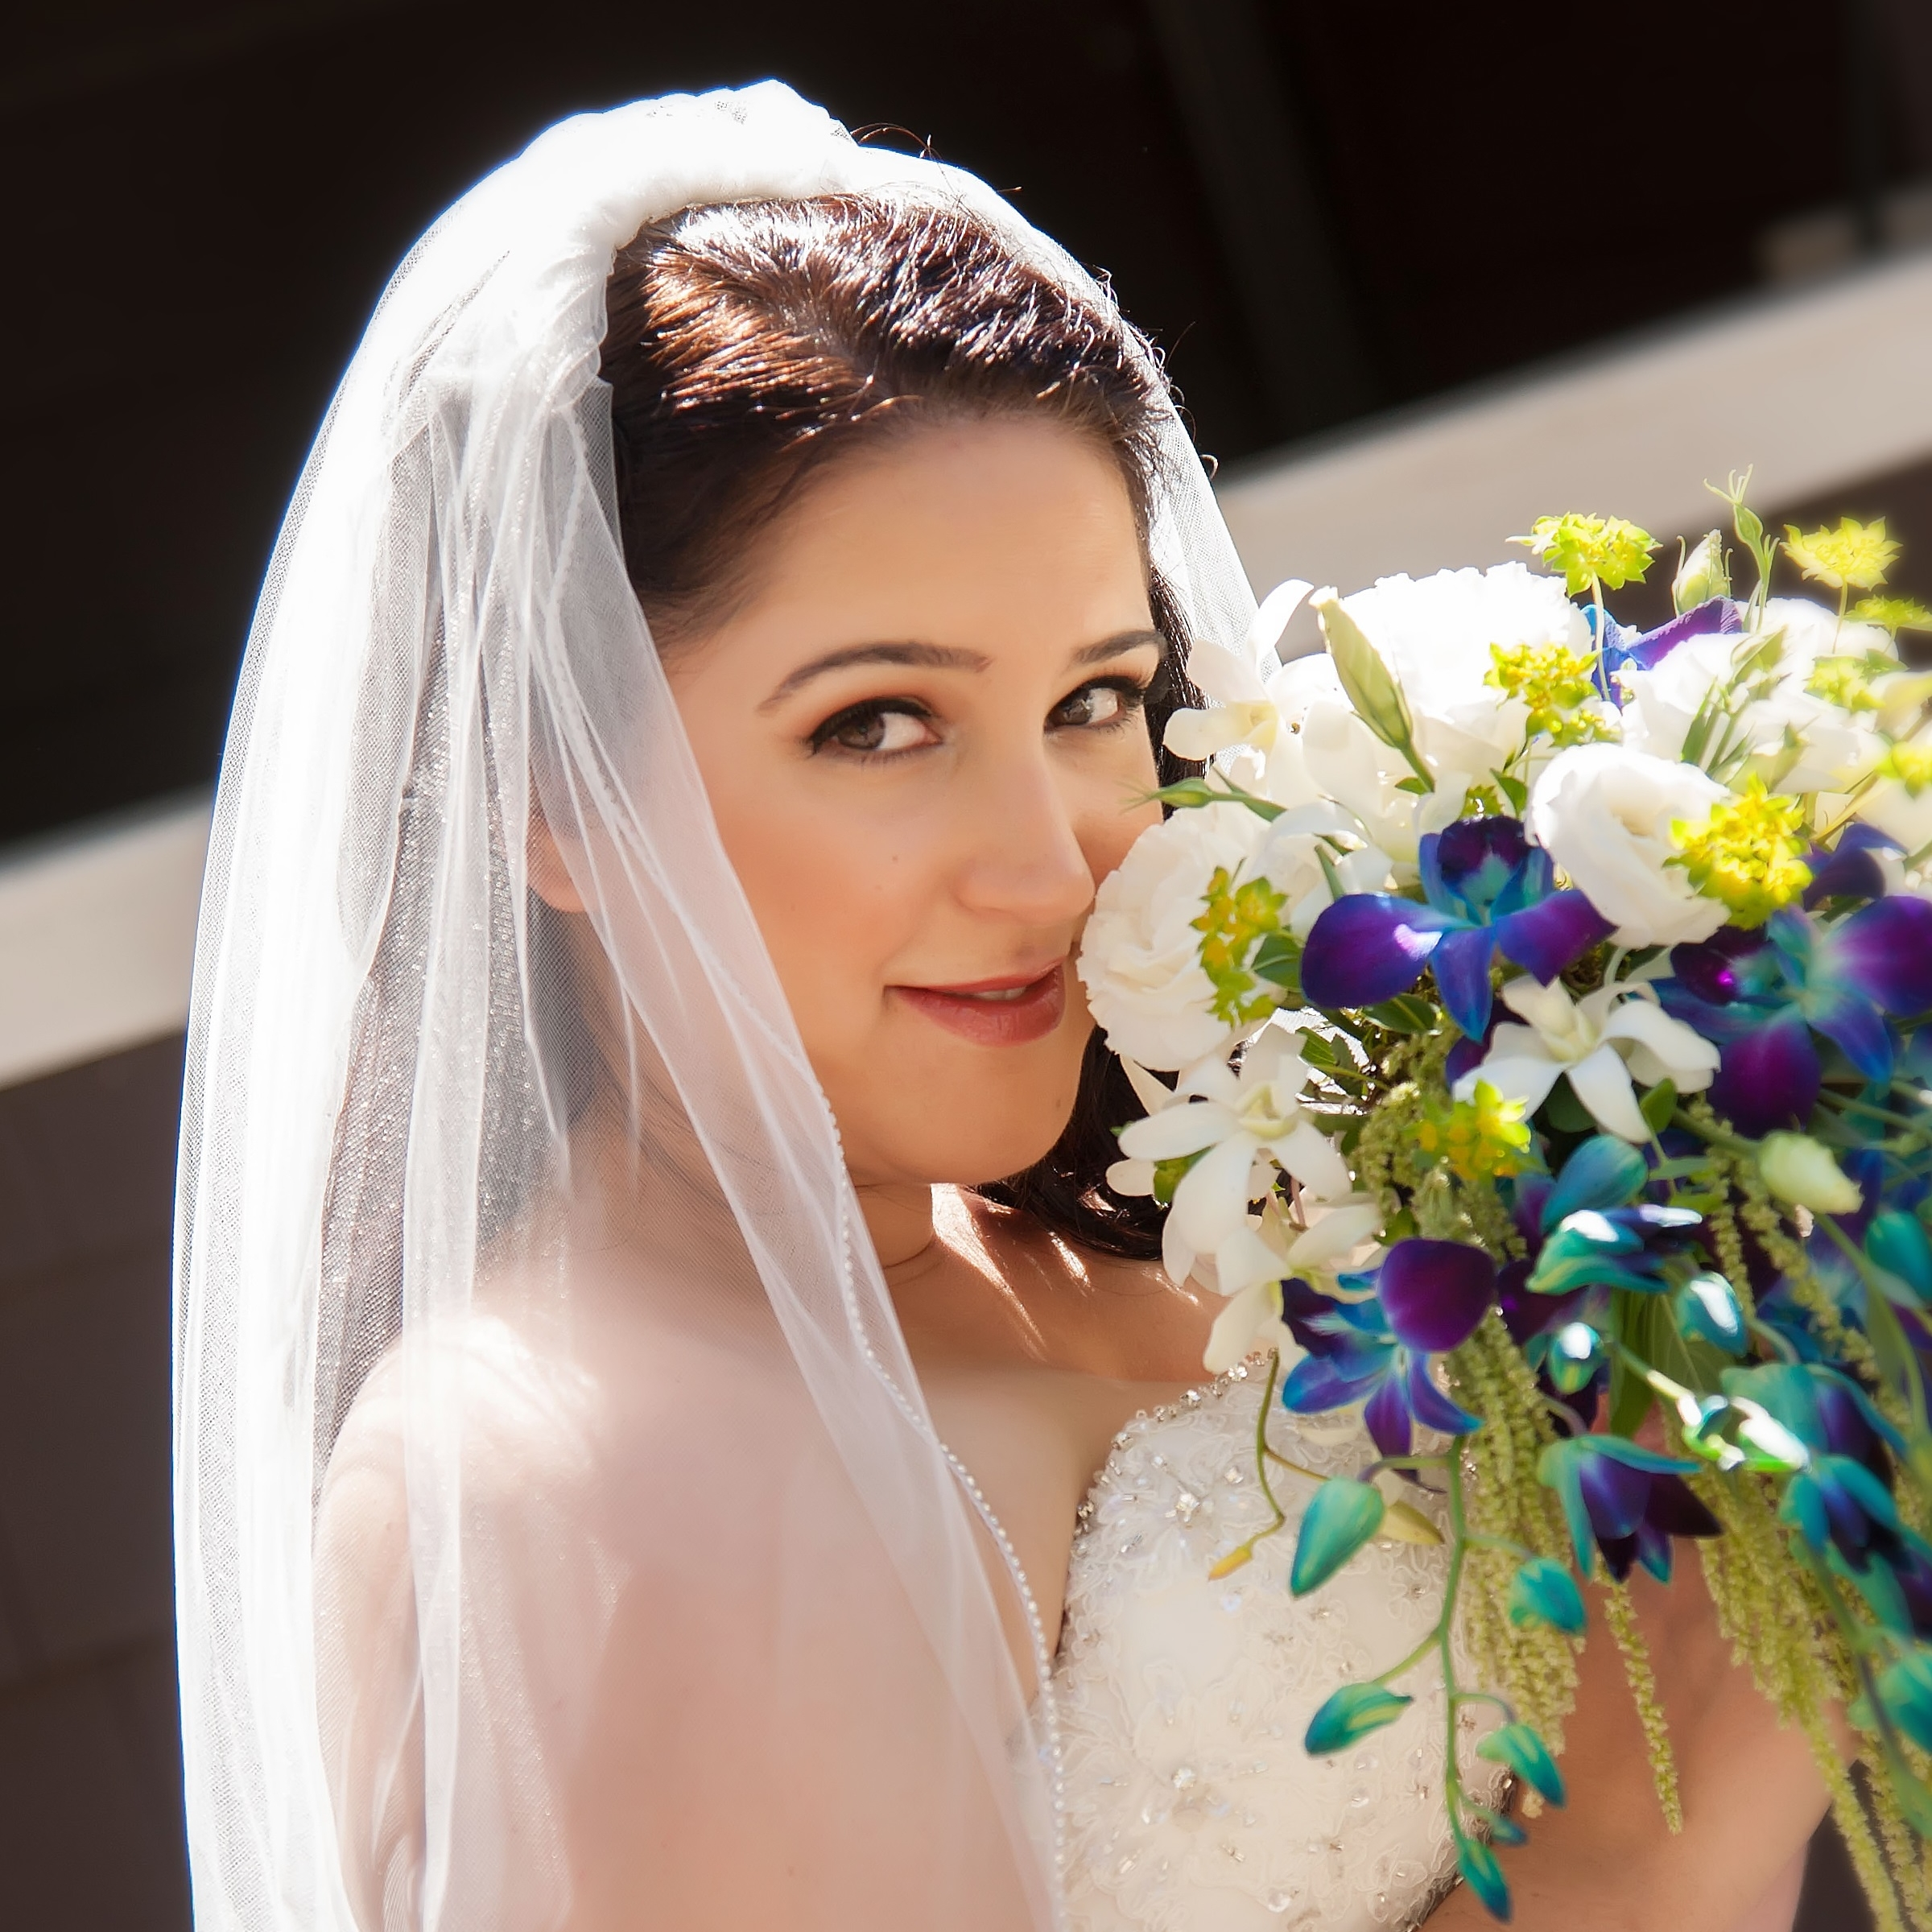 Bride with Bouquet.jpg